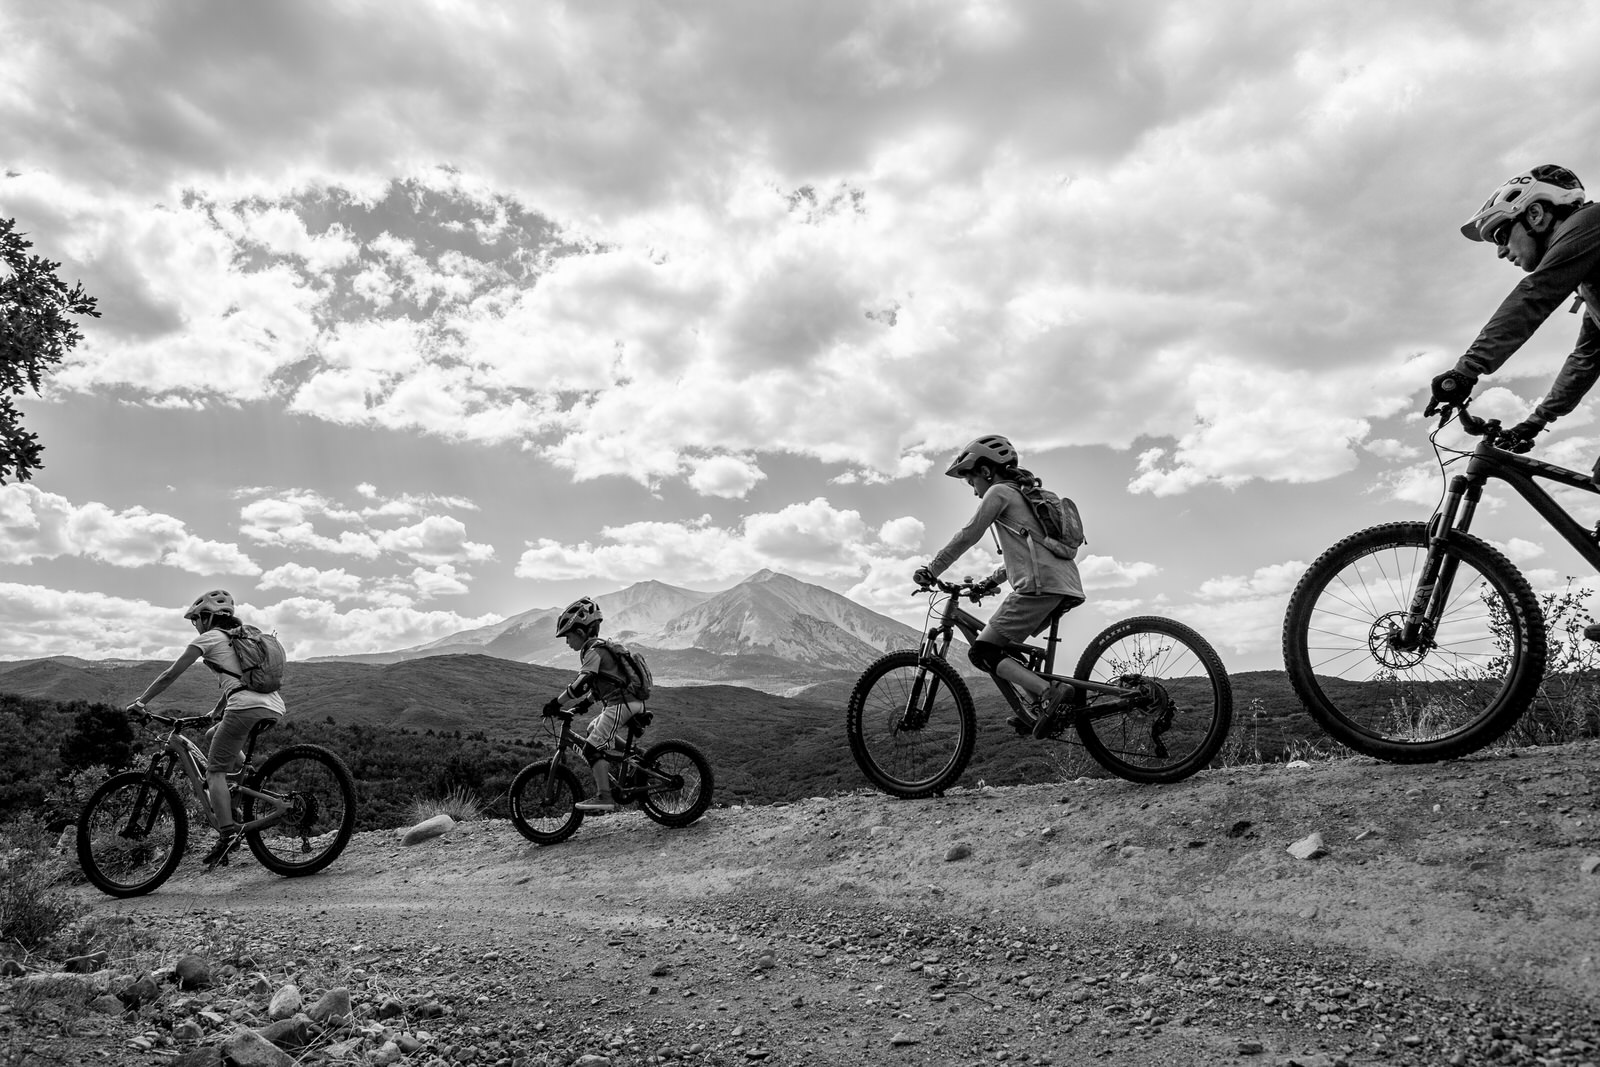 Family of four biking in aspen colorado. Black and White silhouette